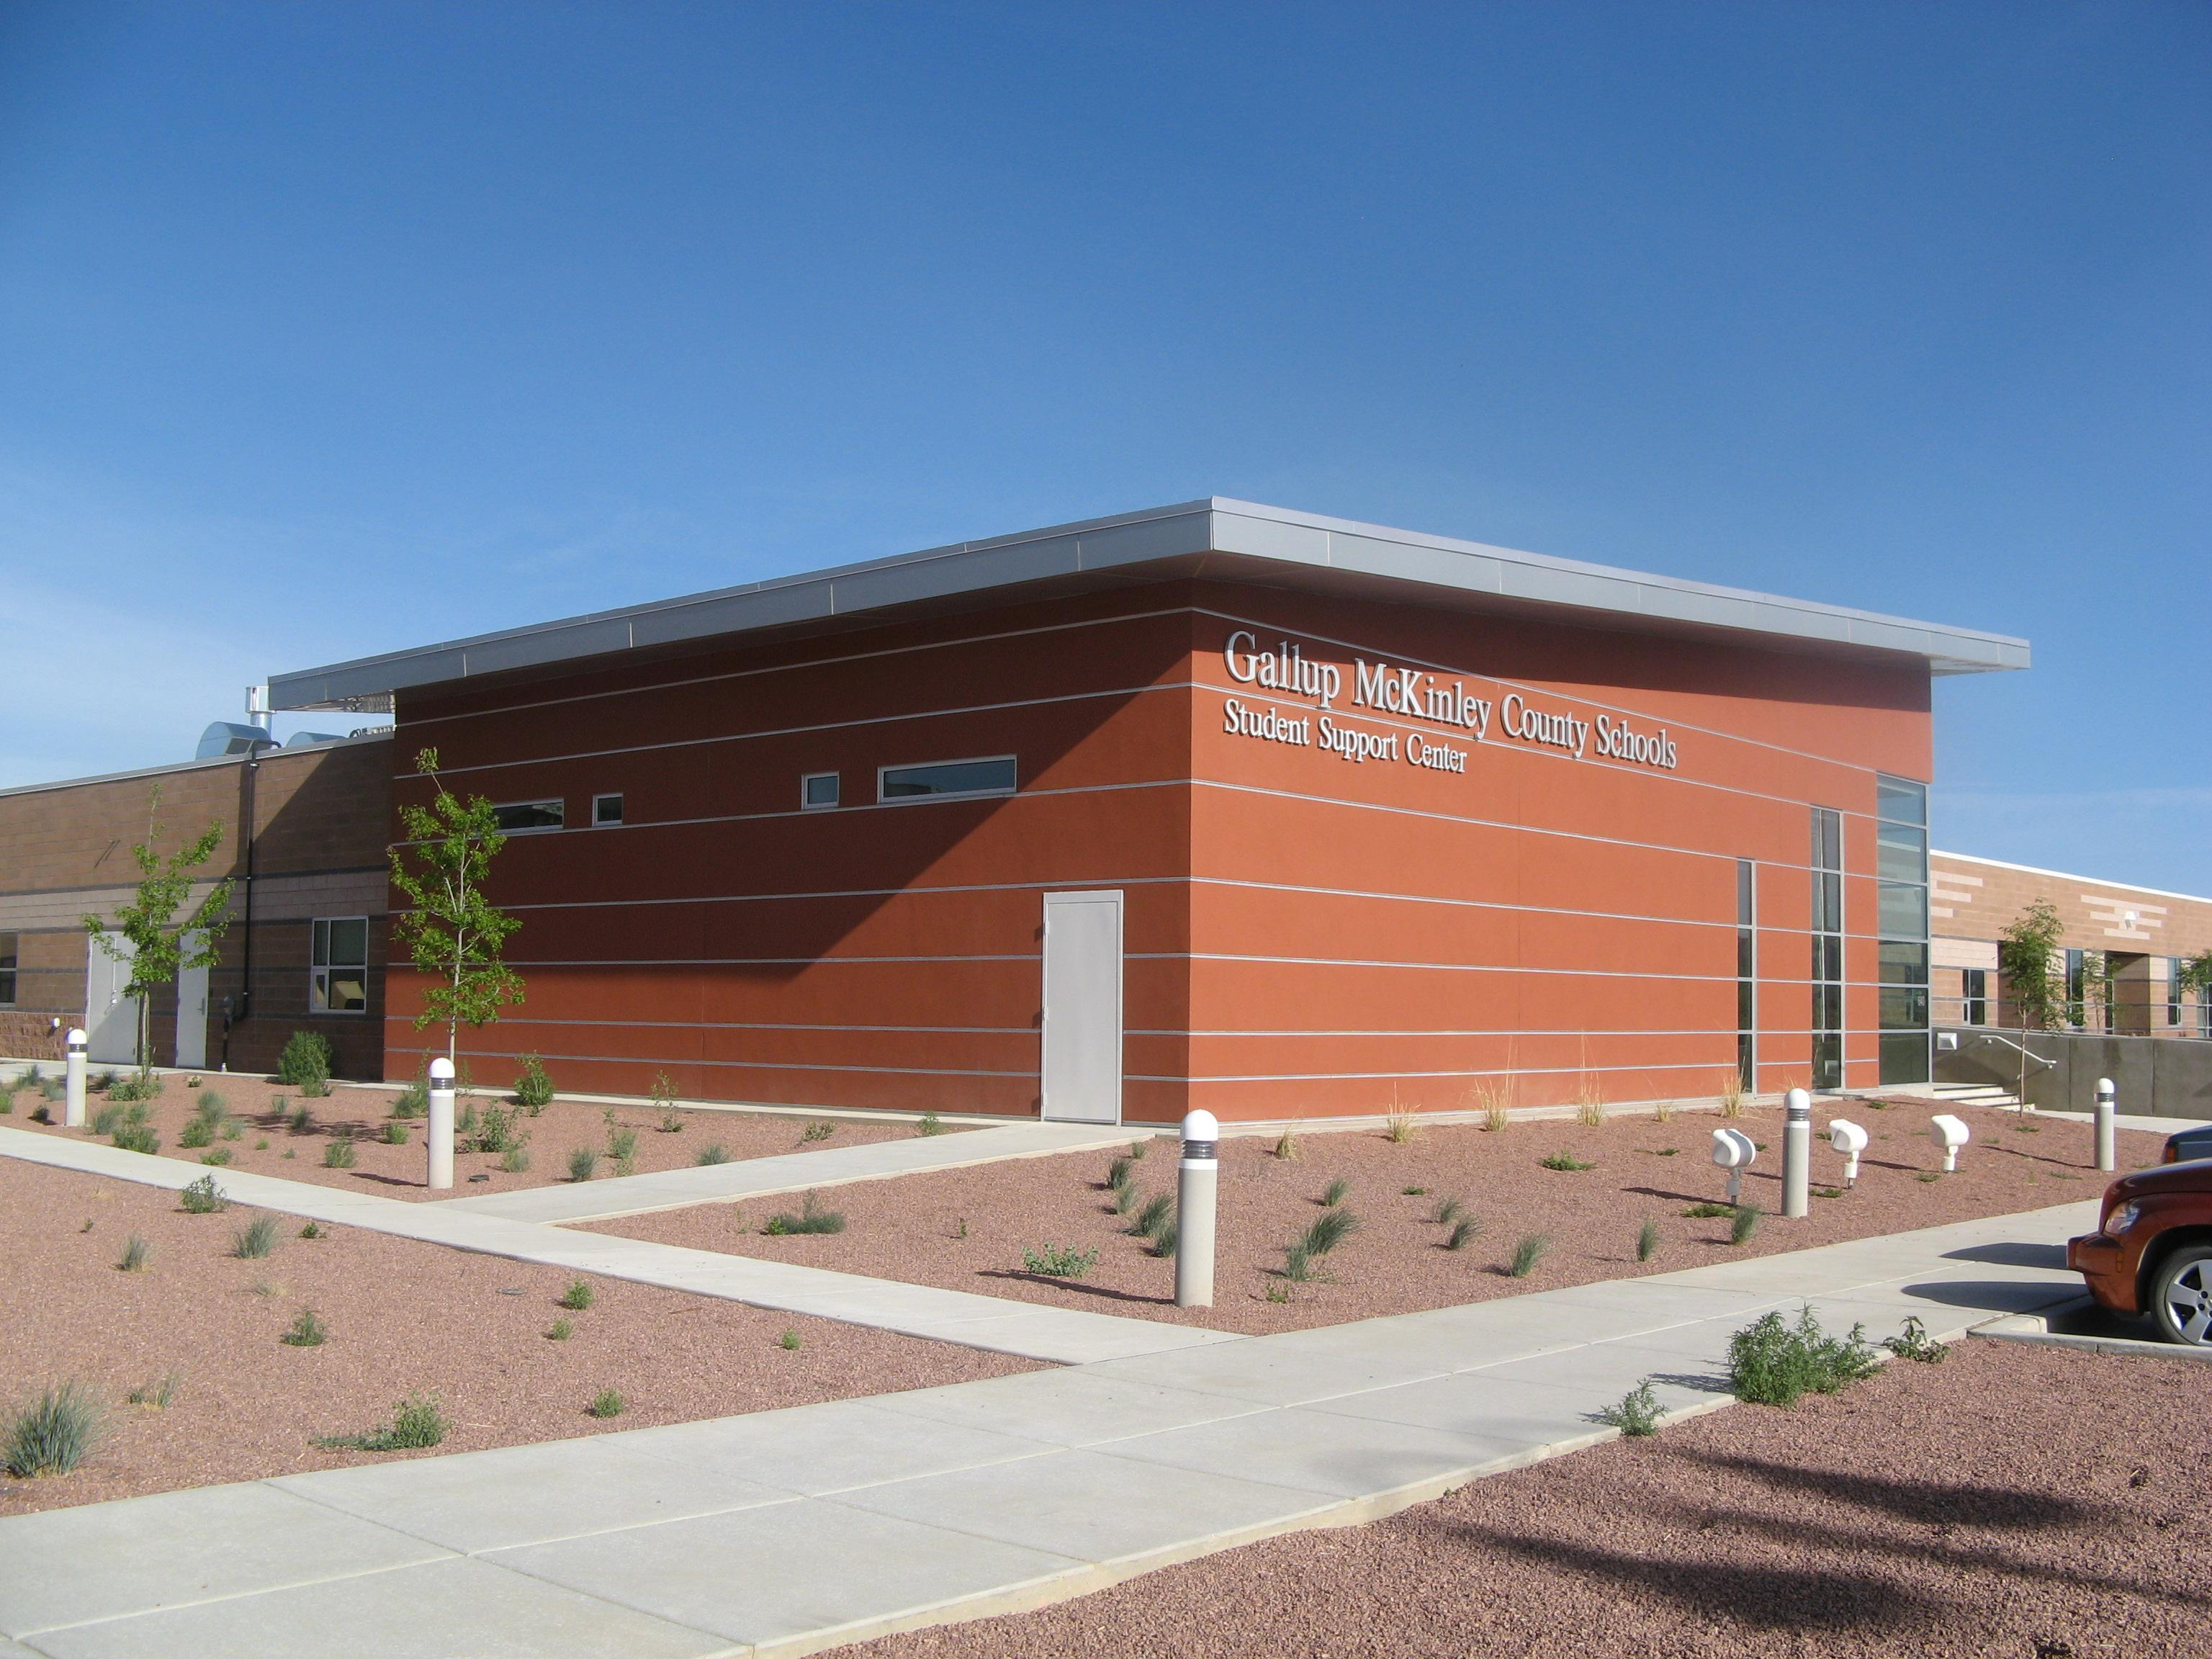 Gallup McKinley County Schools Student Support Center